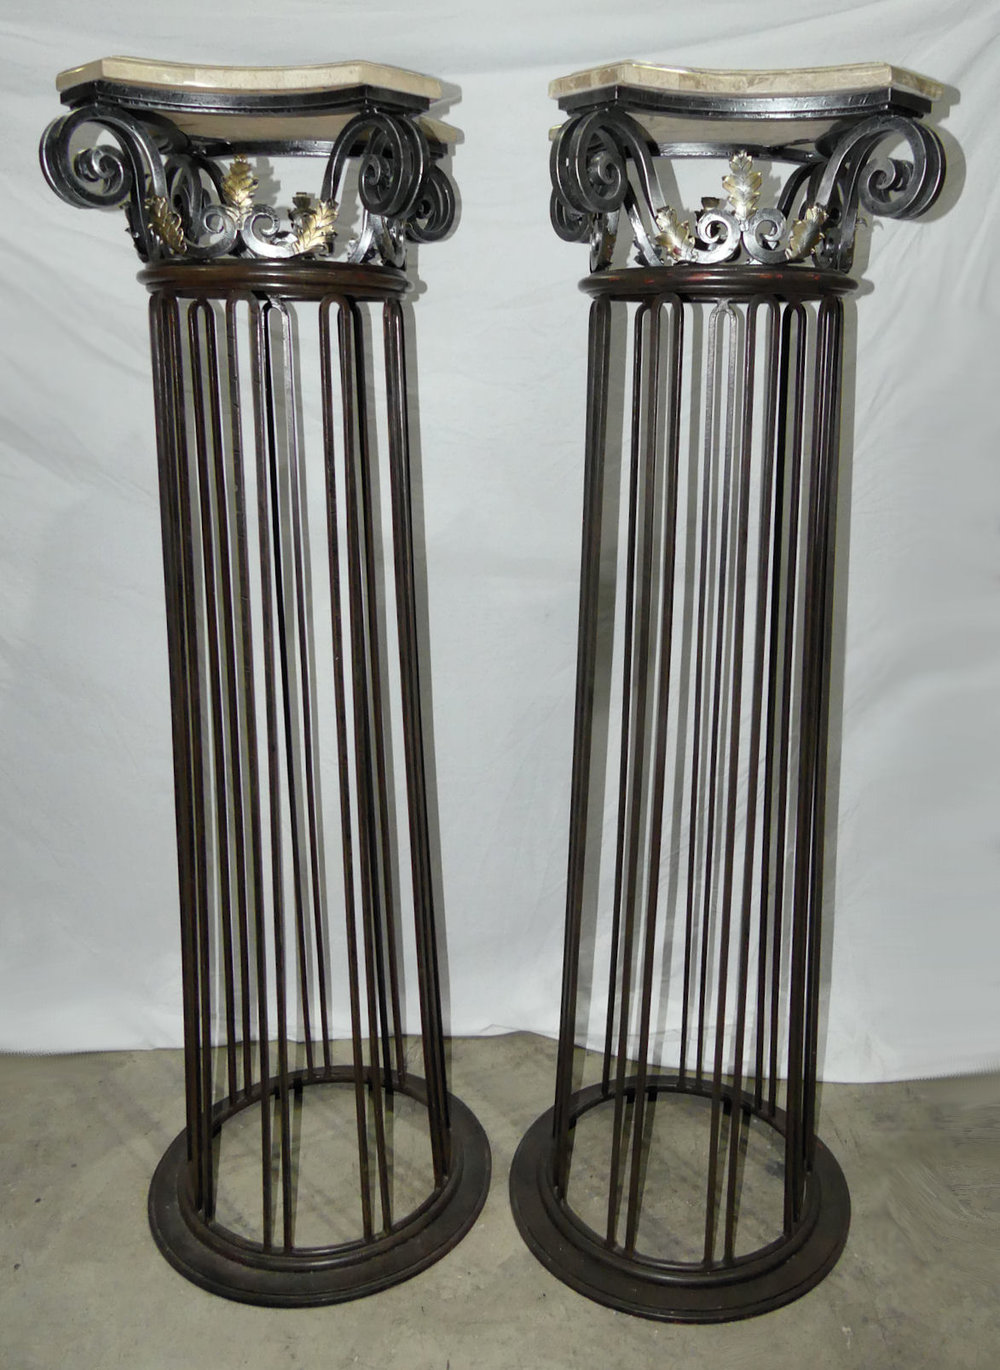 Pair of 2 Maitland Smith Style Tall Marble Top Iron Pedestals  $1,400